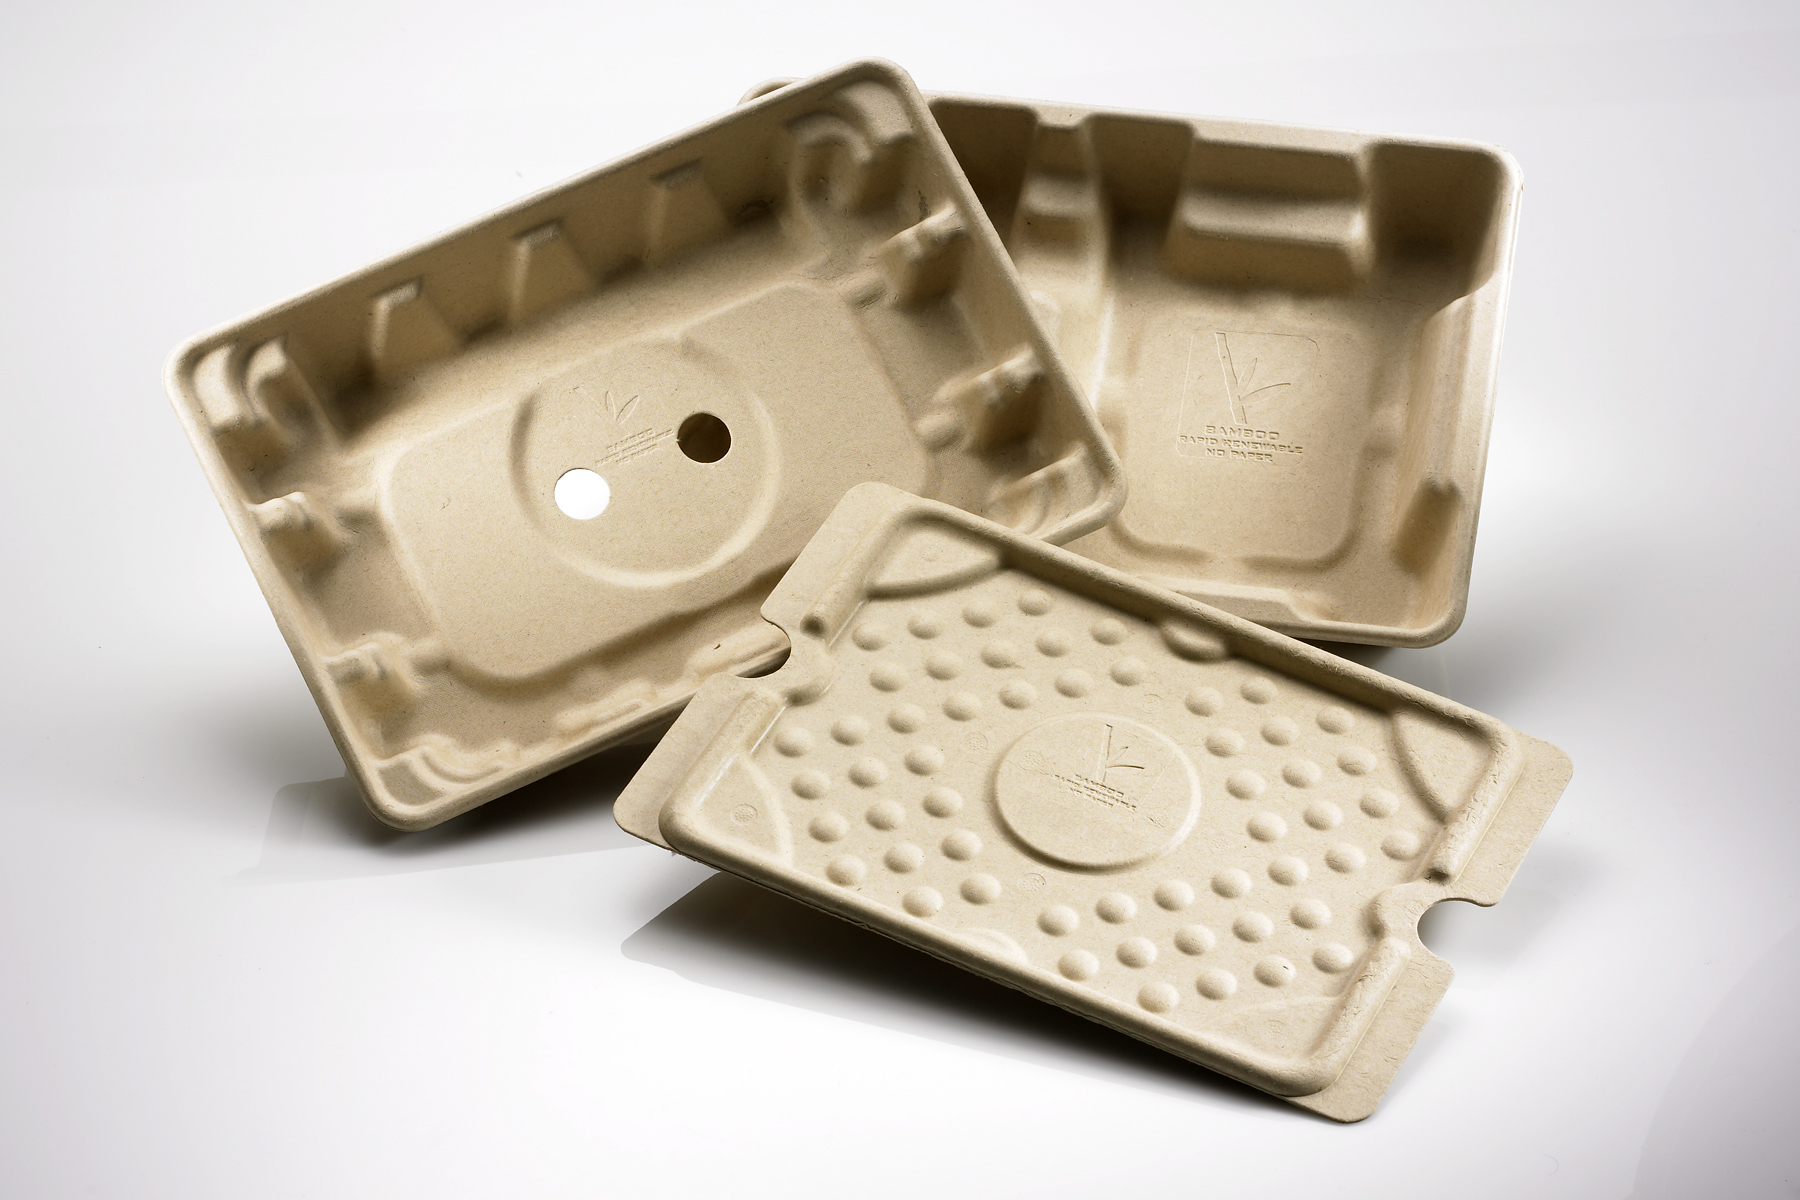 Bamboo transit packaging trays